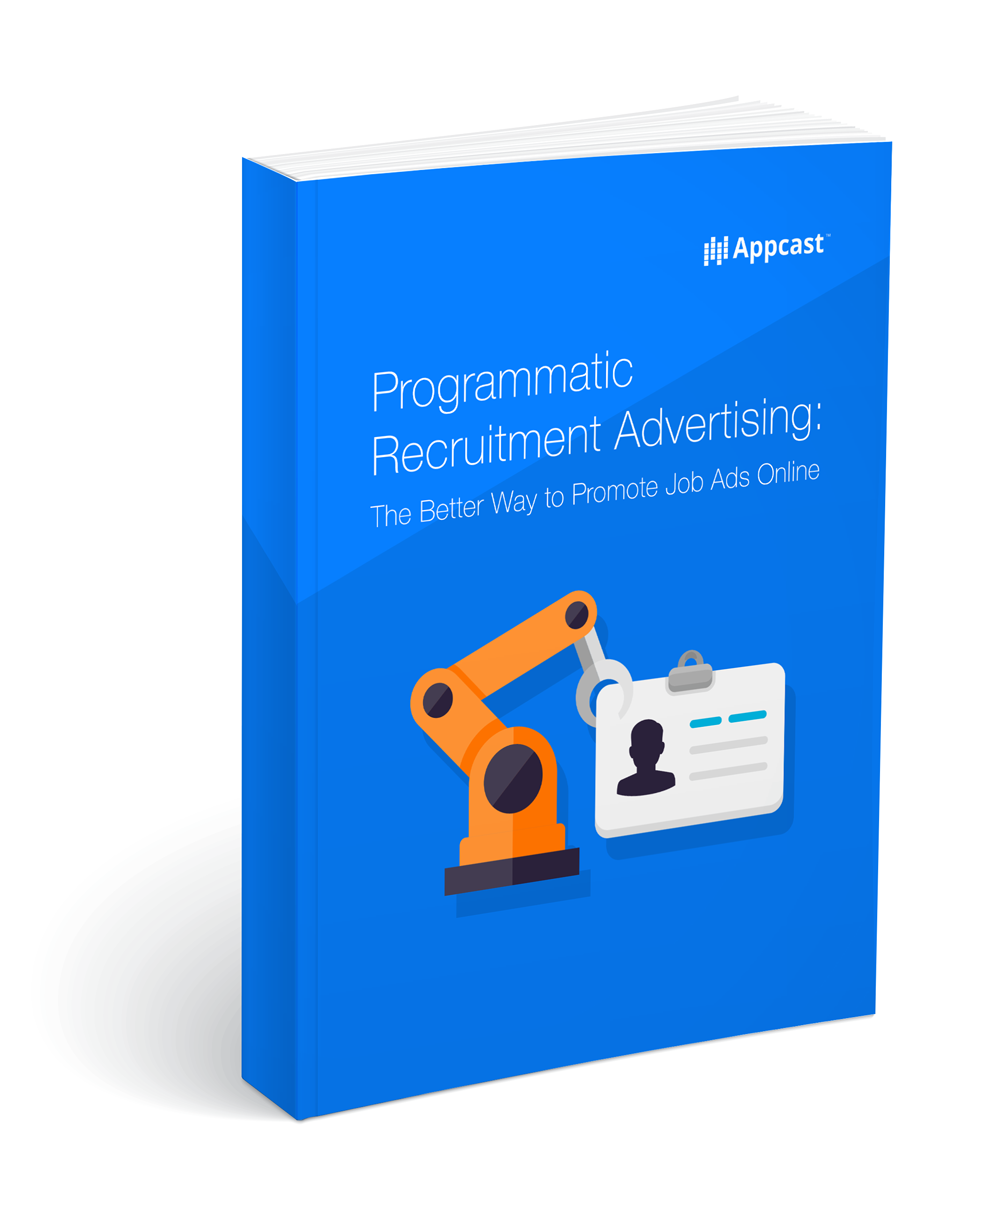 Programmatic Recruitment Advertising